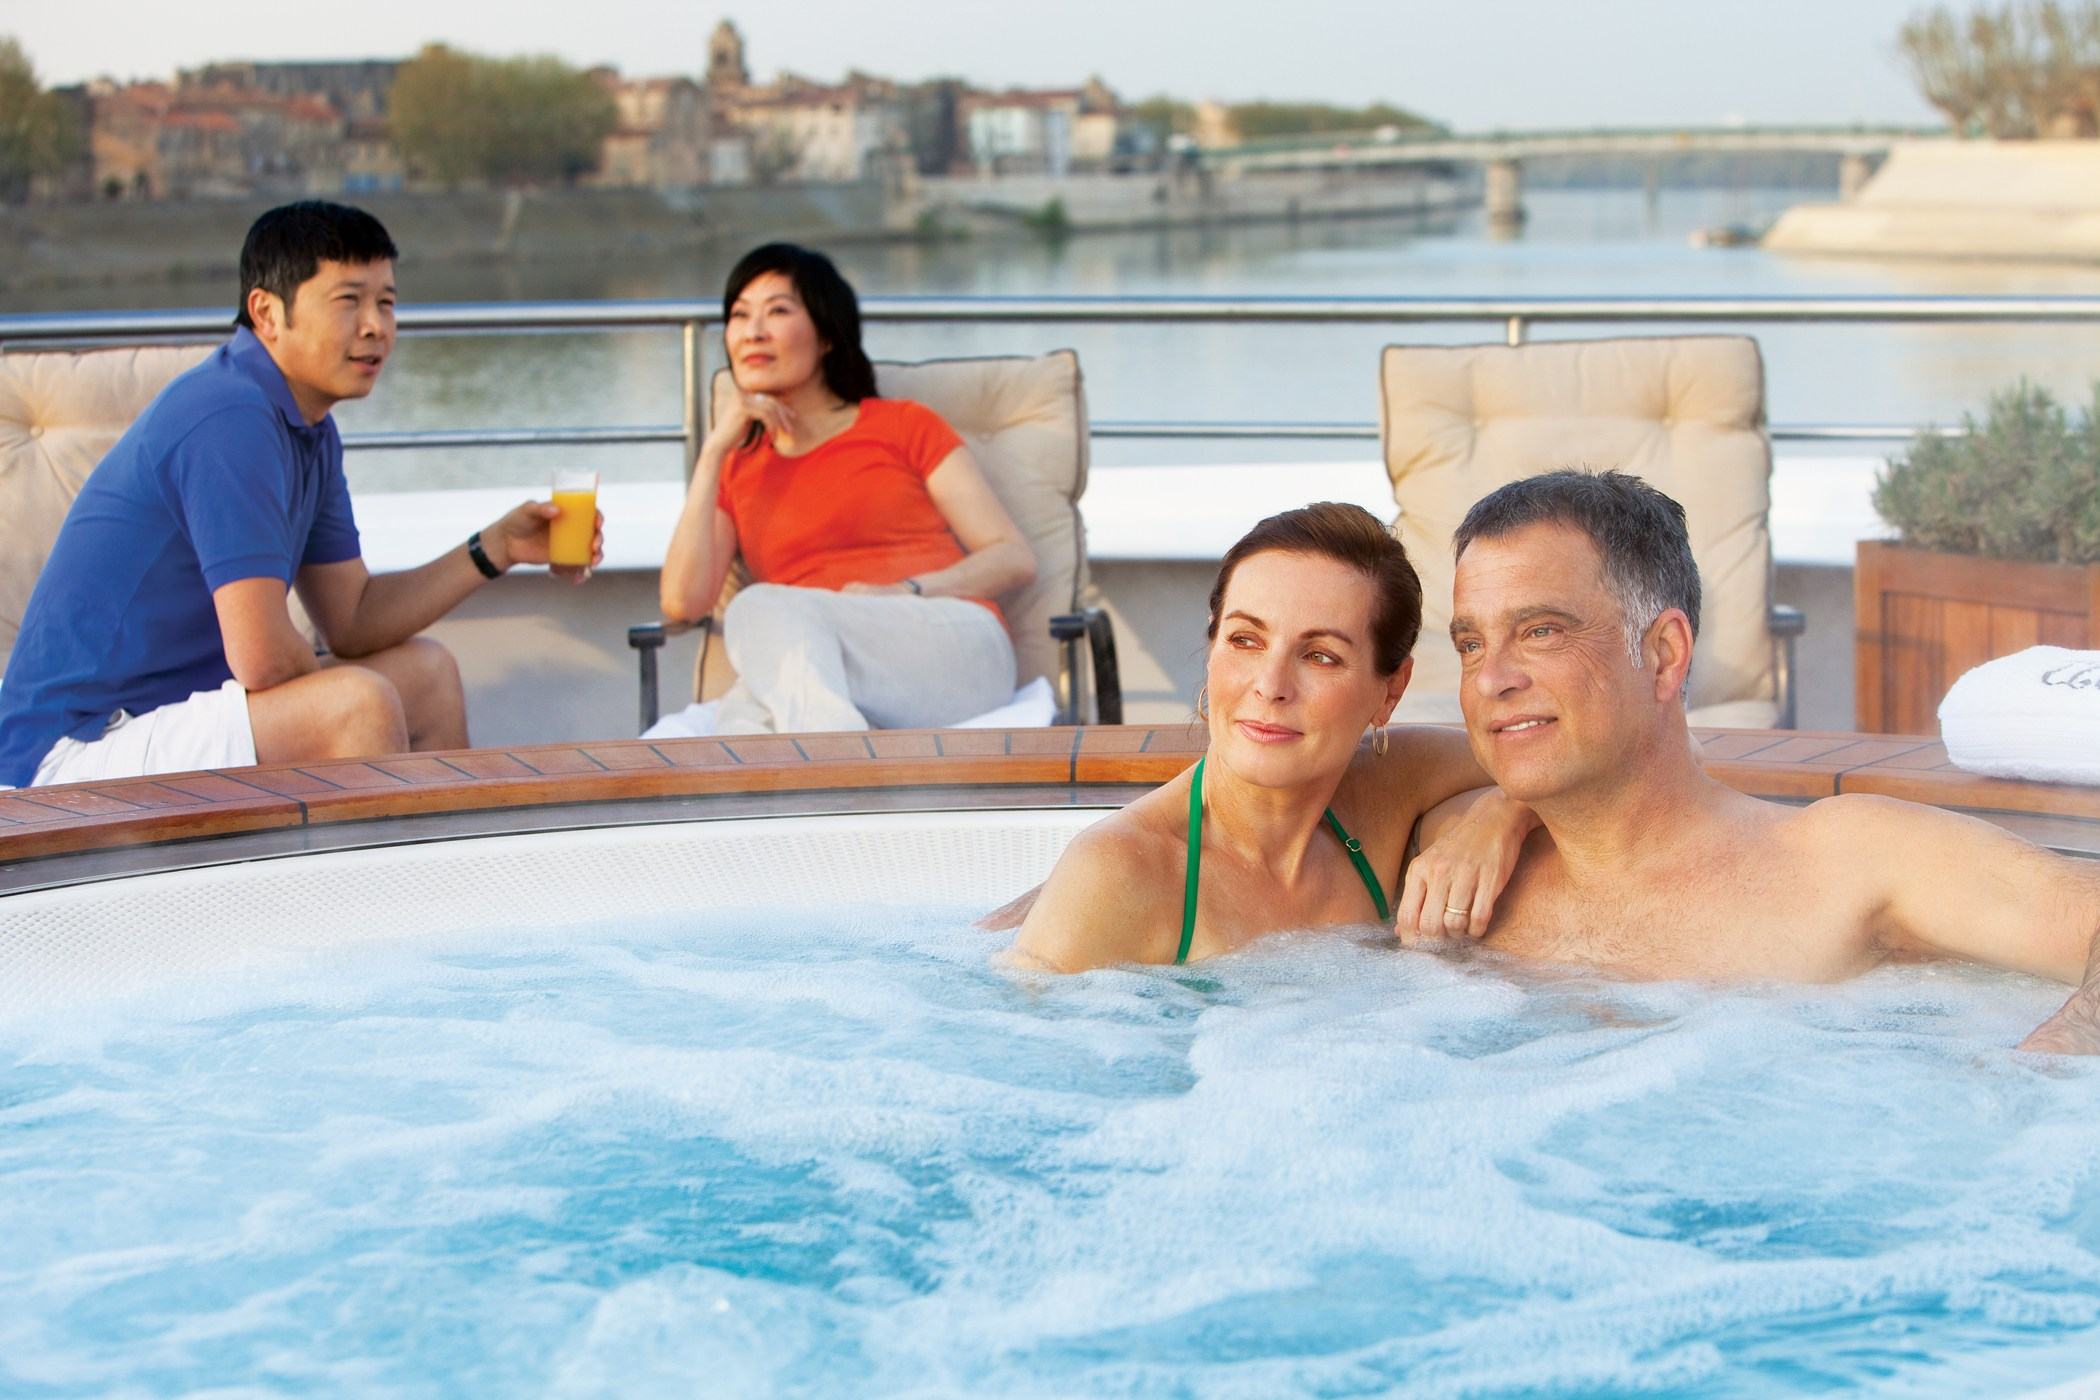 UNIWORLD Boutique River Cruises River Royale Exterior Whirlpool on Sundeck.jpg